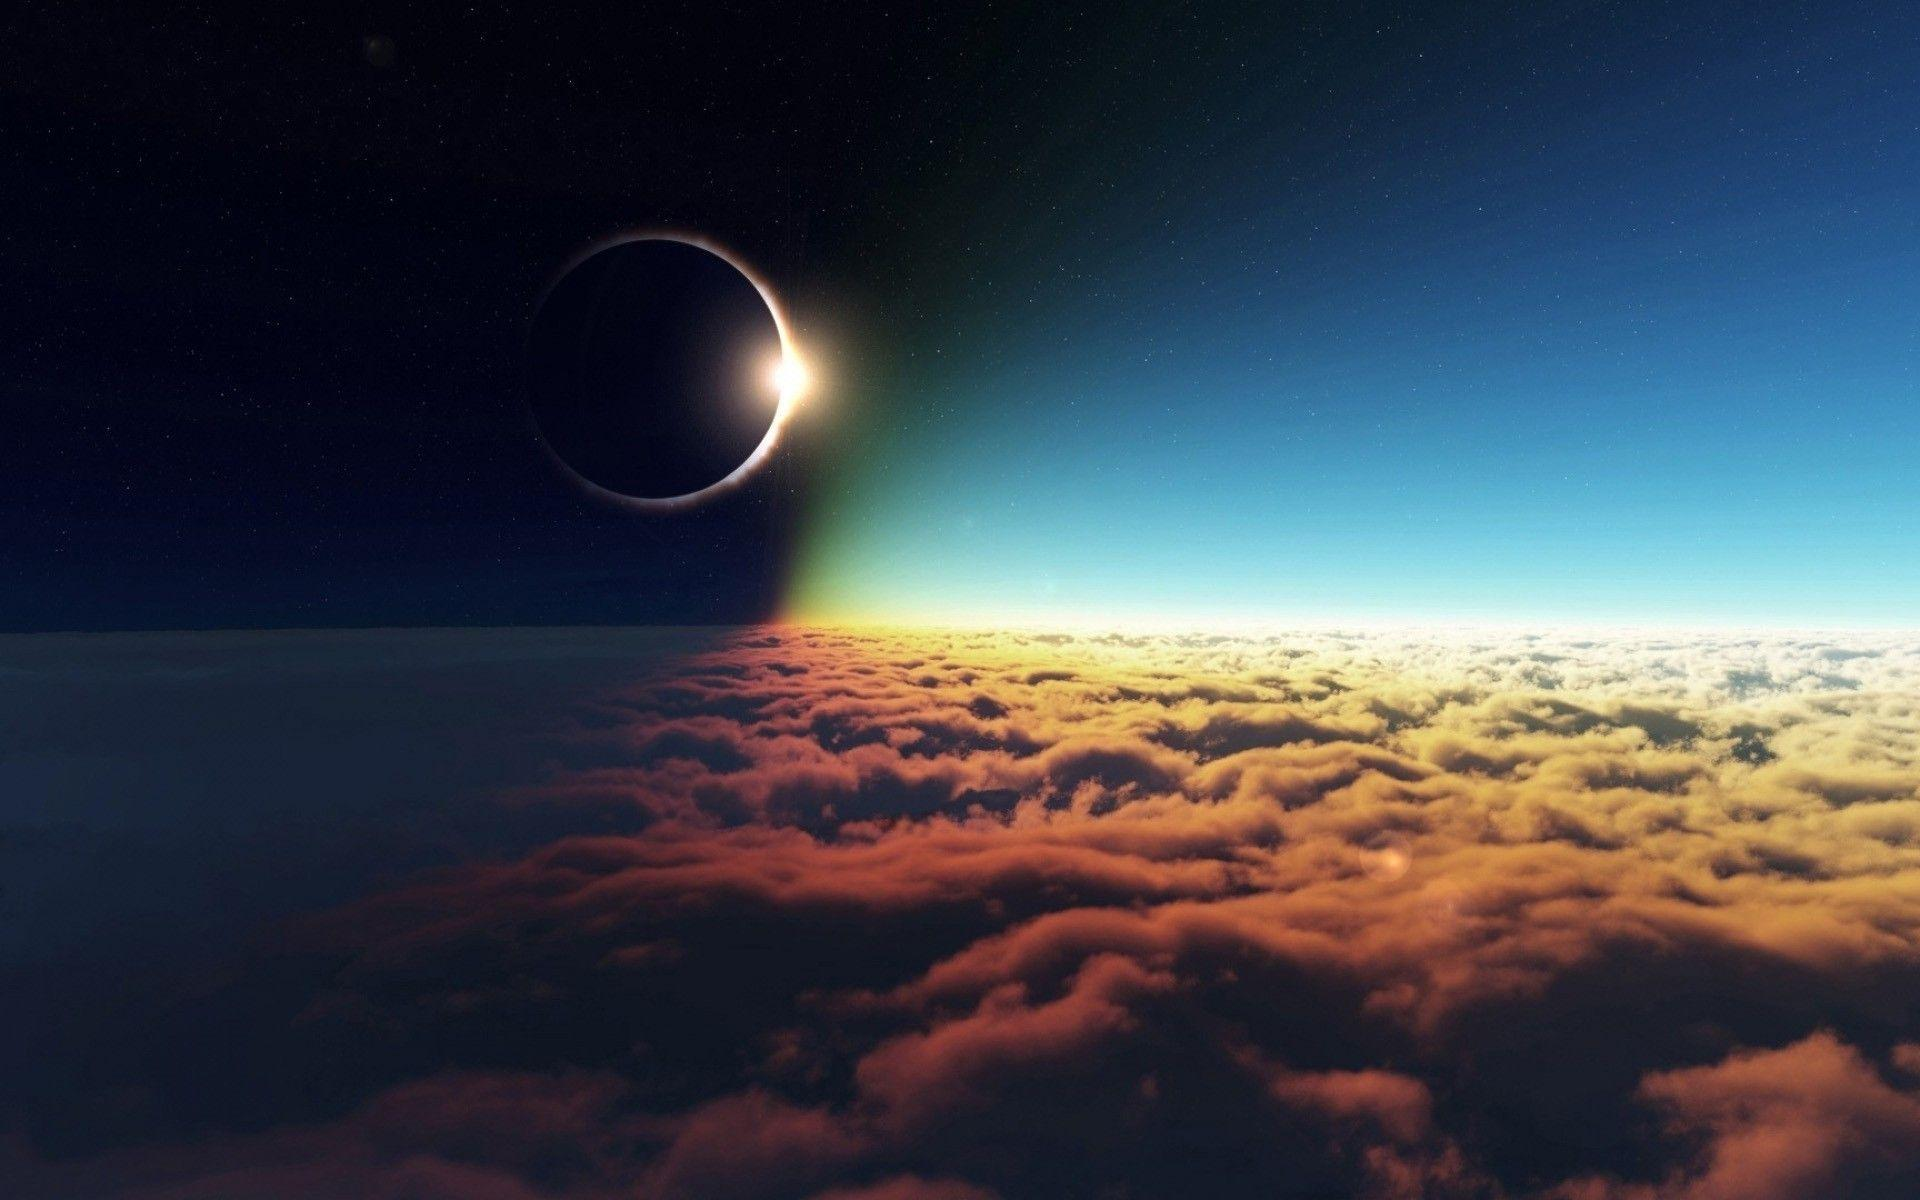 Solar Eclipse 2017 Wallpapers   Top Solar Eclipse 2017 1920x1200